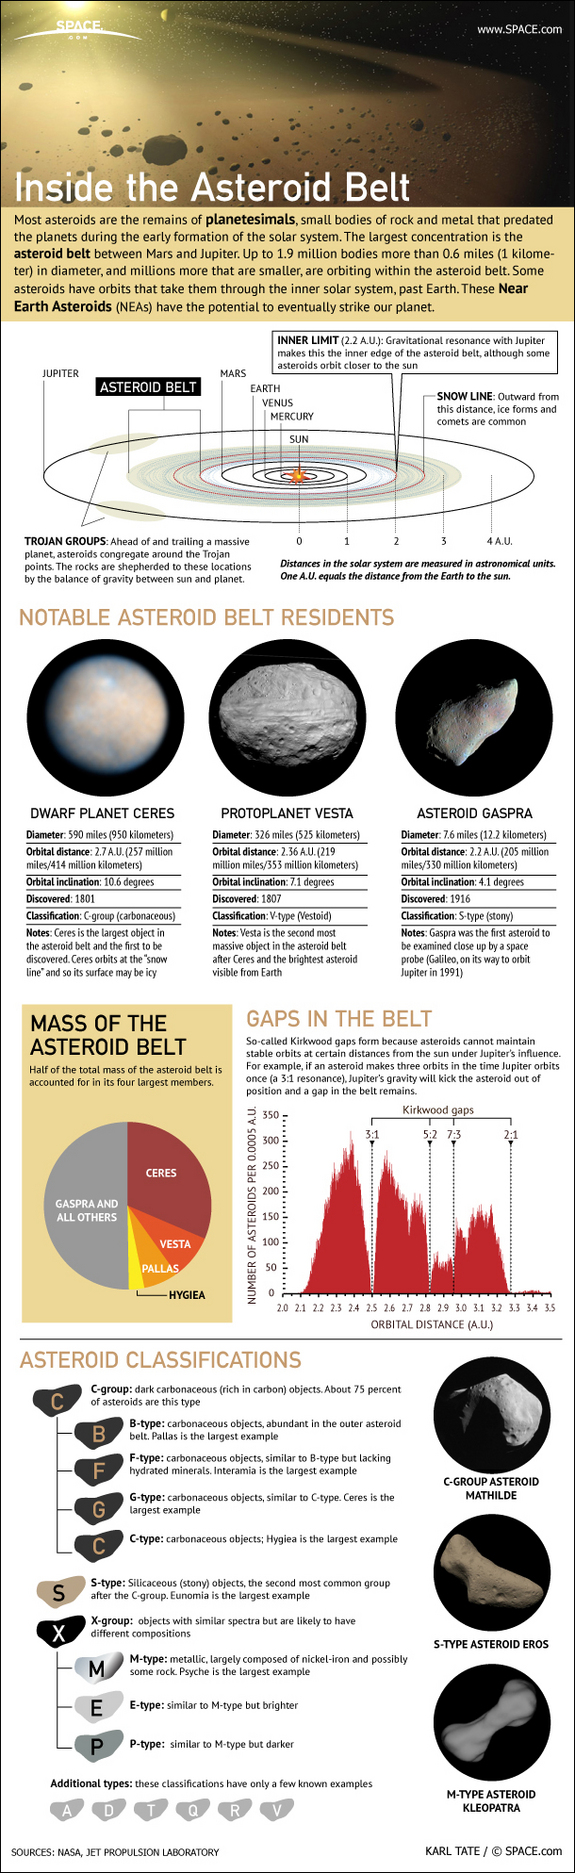 Find out all about the inhabitants of the asteroid belt  between Mars and Jupiter in this SPACE.com infographic.